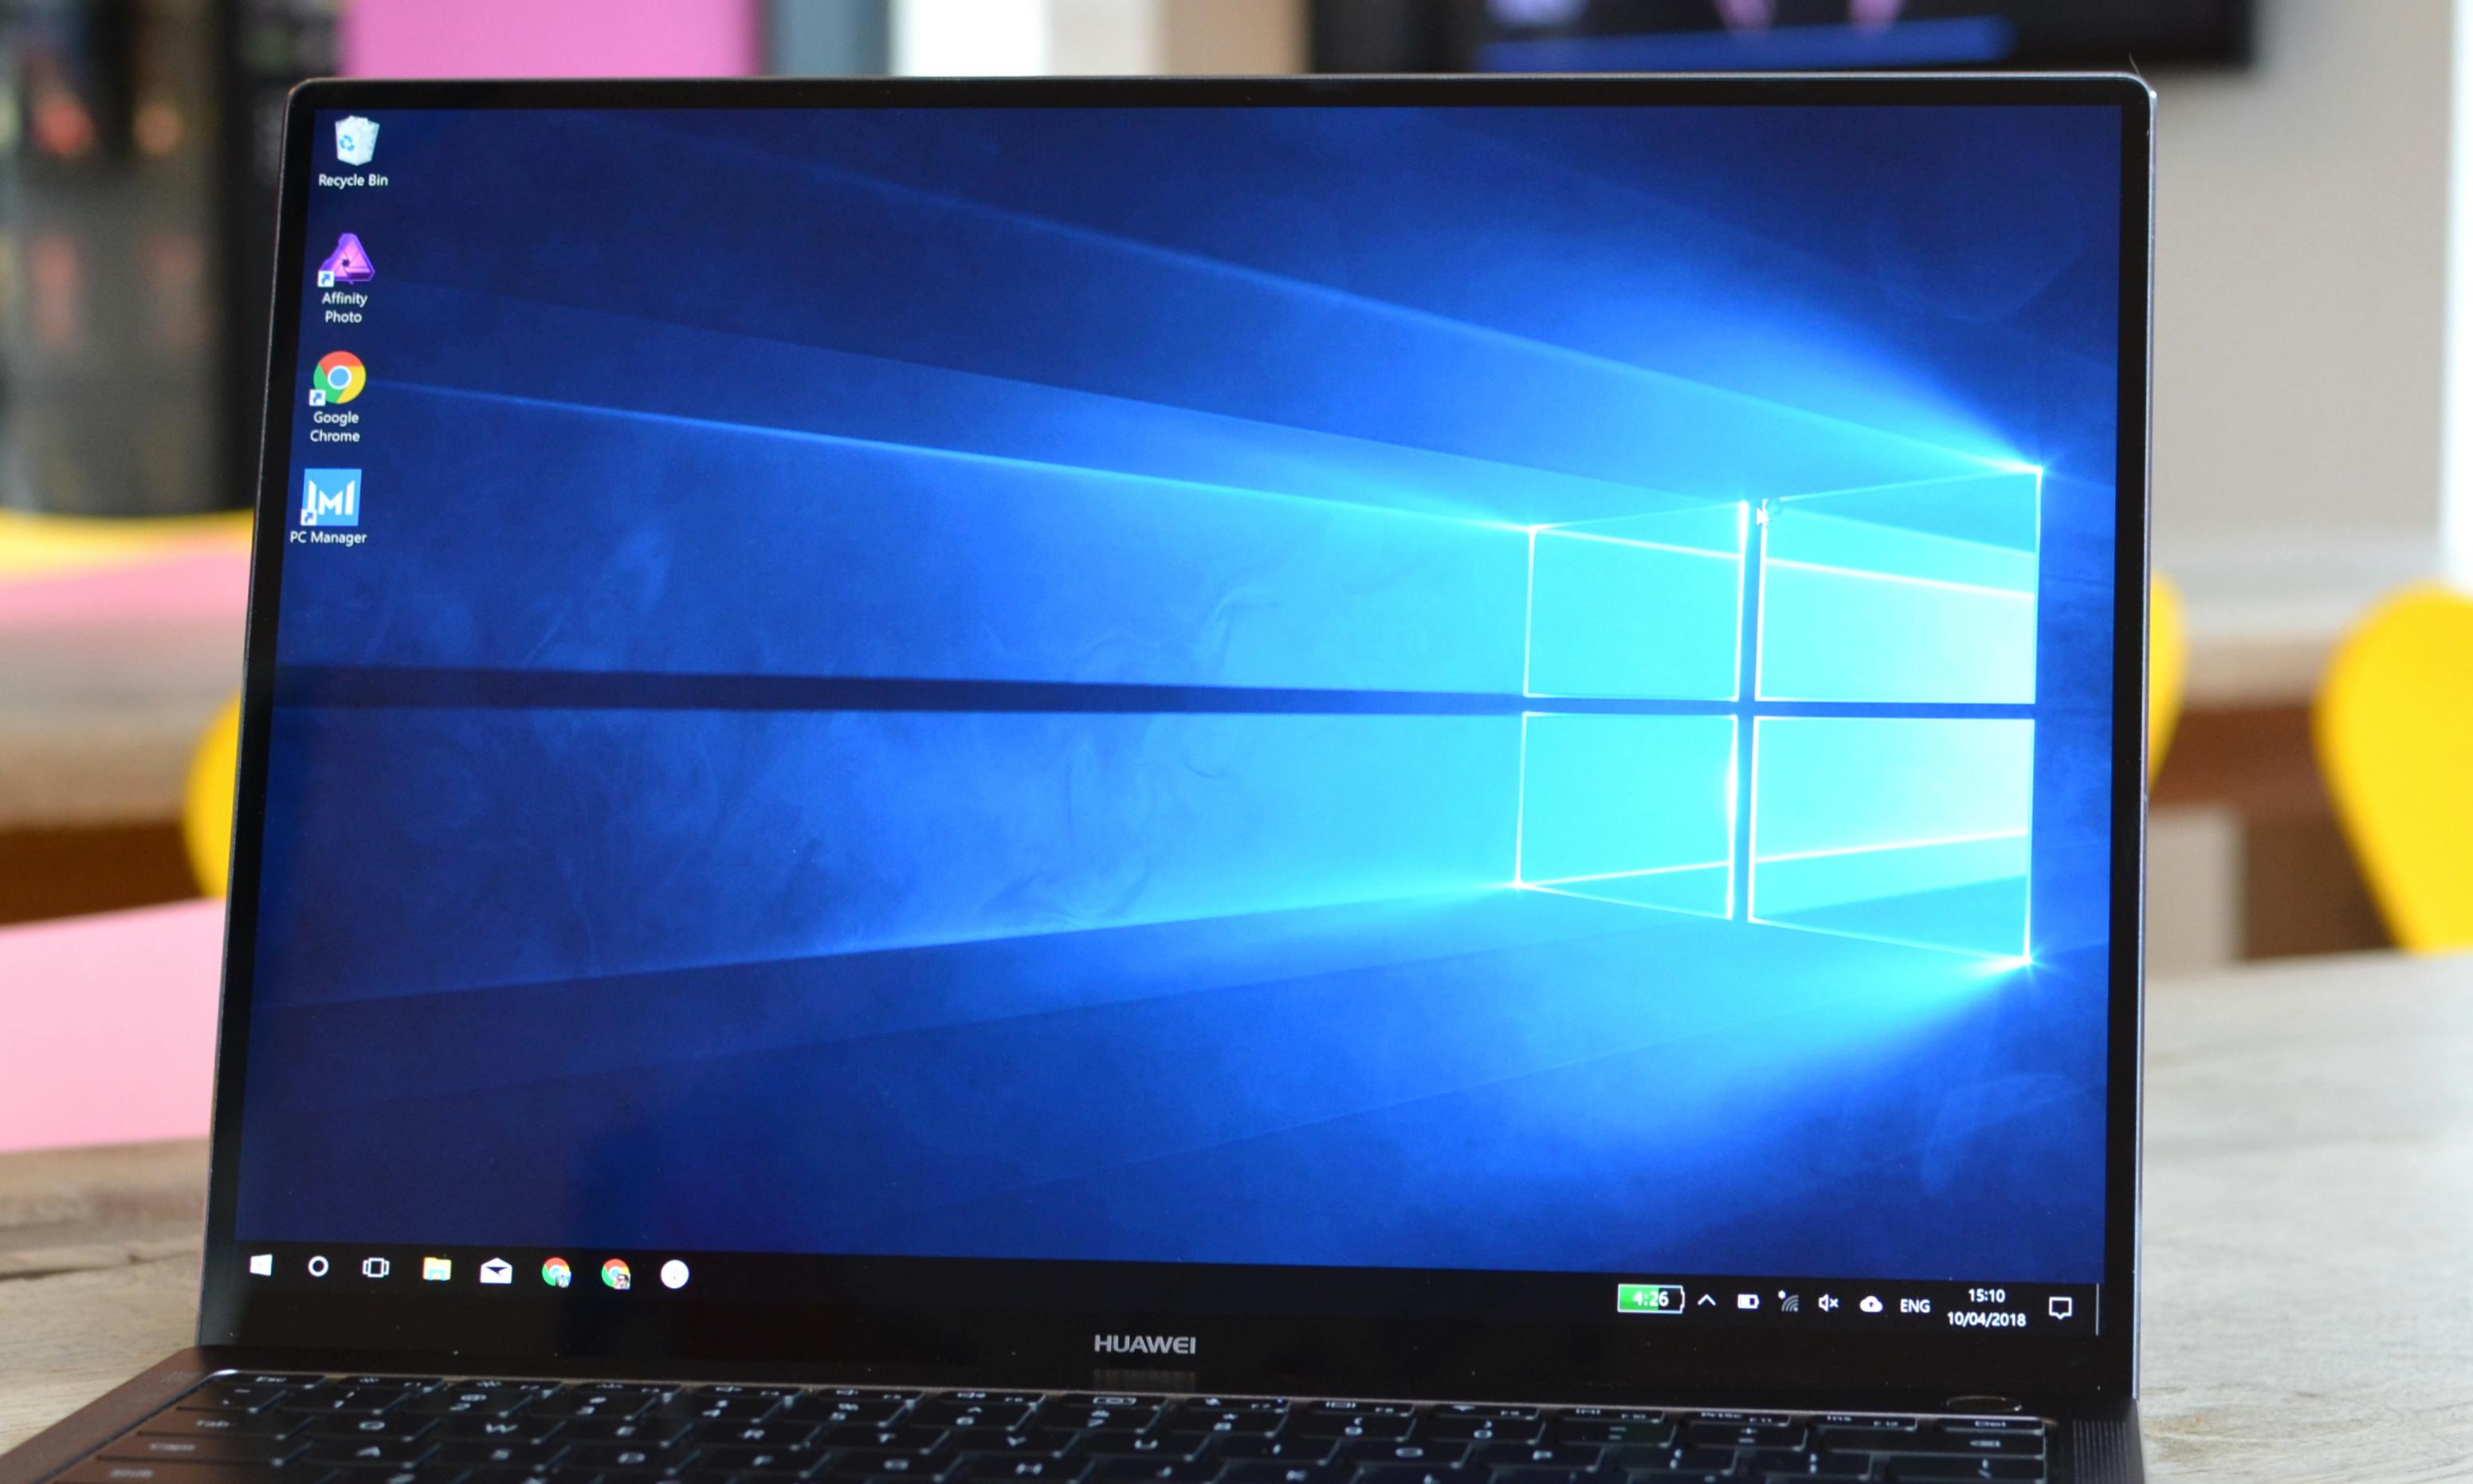 What's the best replacement for the Windows 10 Snipping Tool?